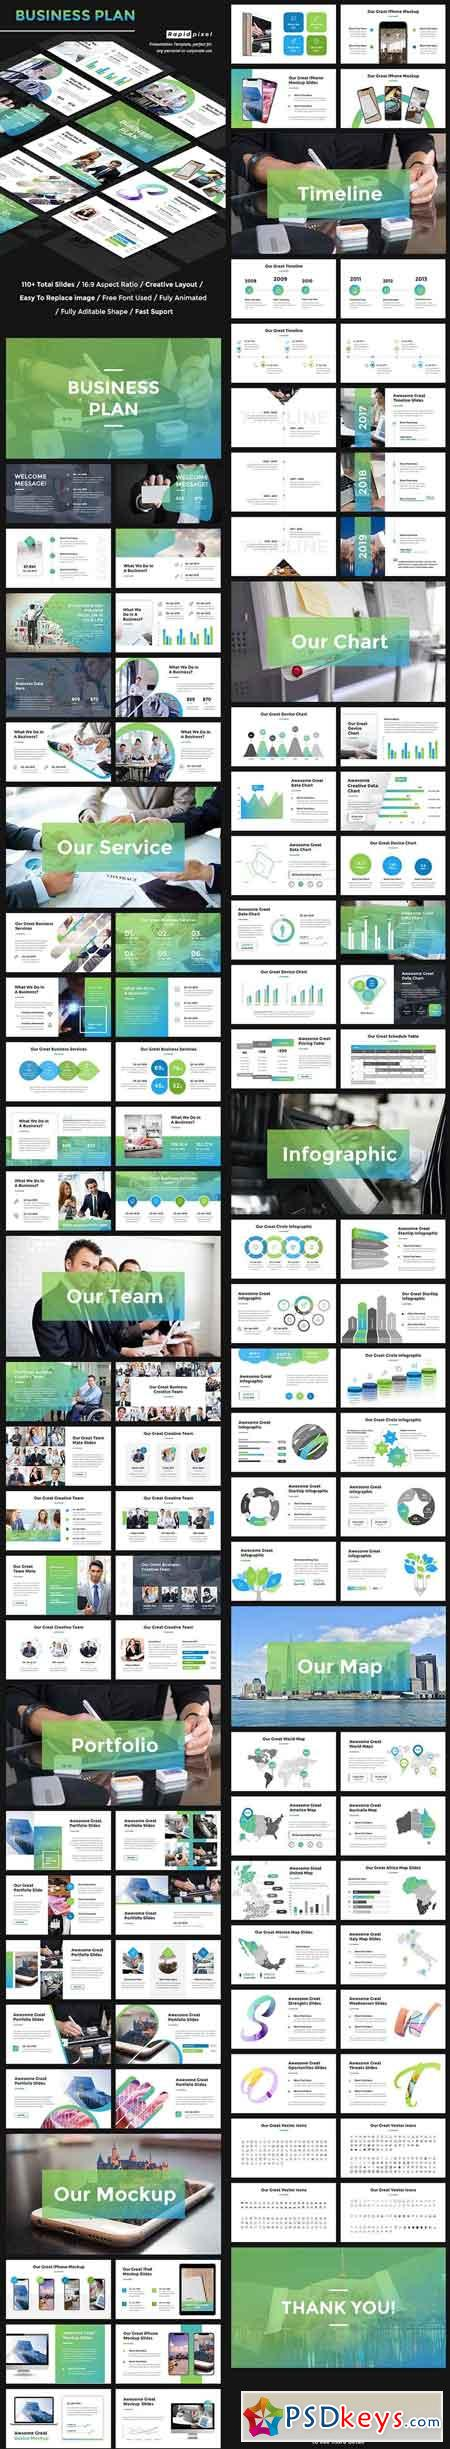 Business Plan PowerPoint 22024791